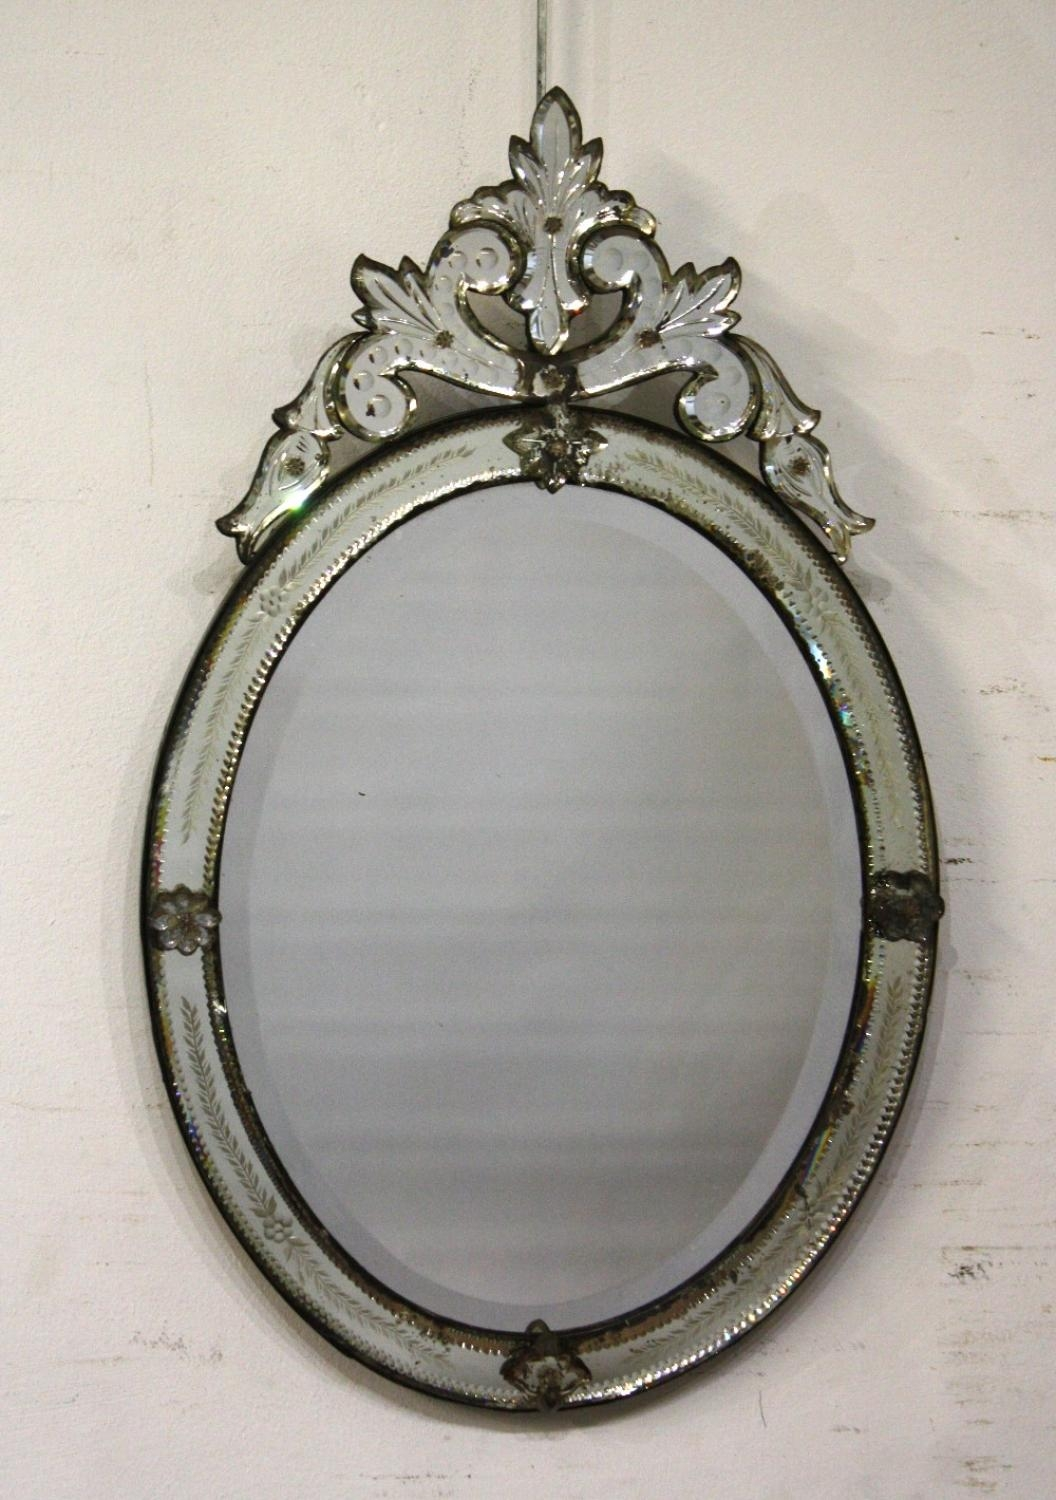 Small Oval Venetian Mirror Regarding Small Venetian Mirror (Image 19 of 20)